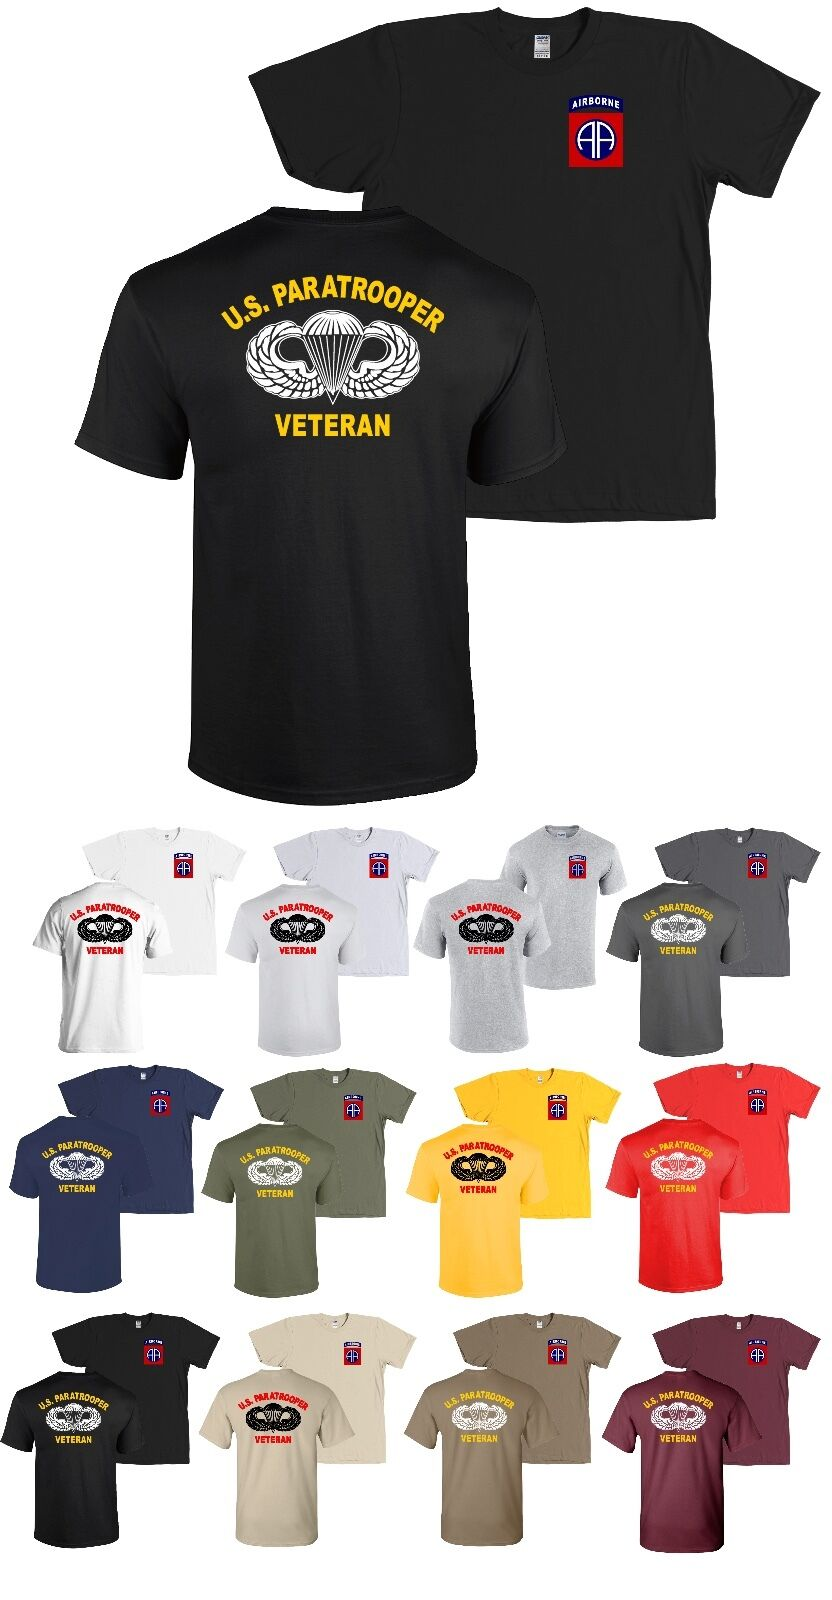 82nd Airborne Division US Paratrooper Veteran T-Shirt Infantry Army - NEW